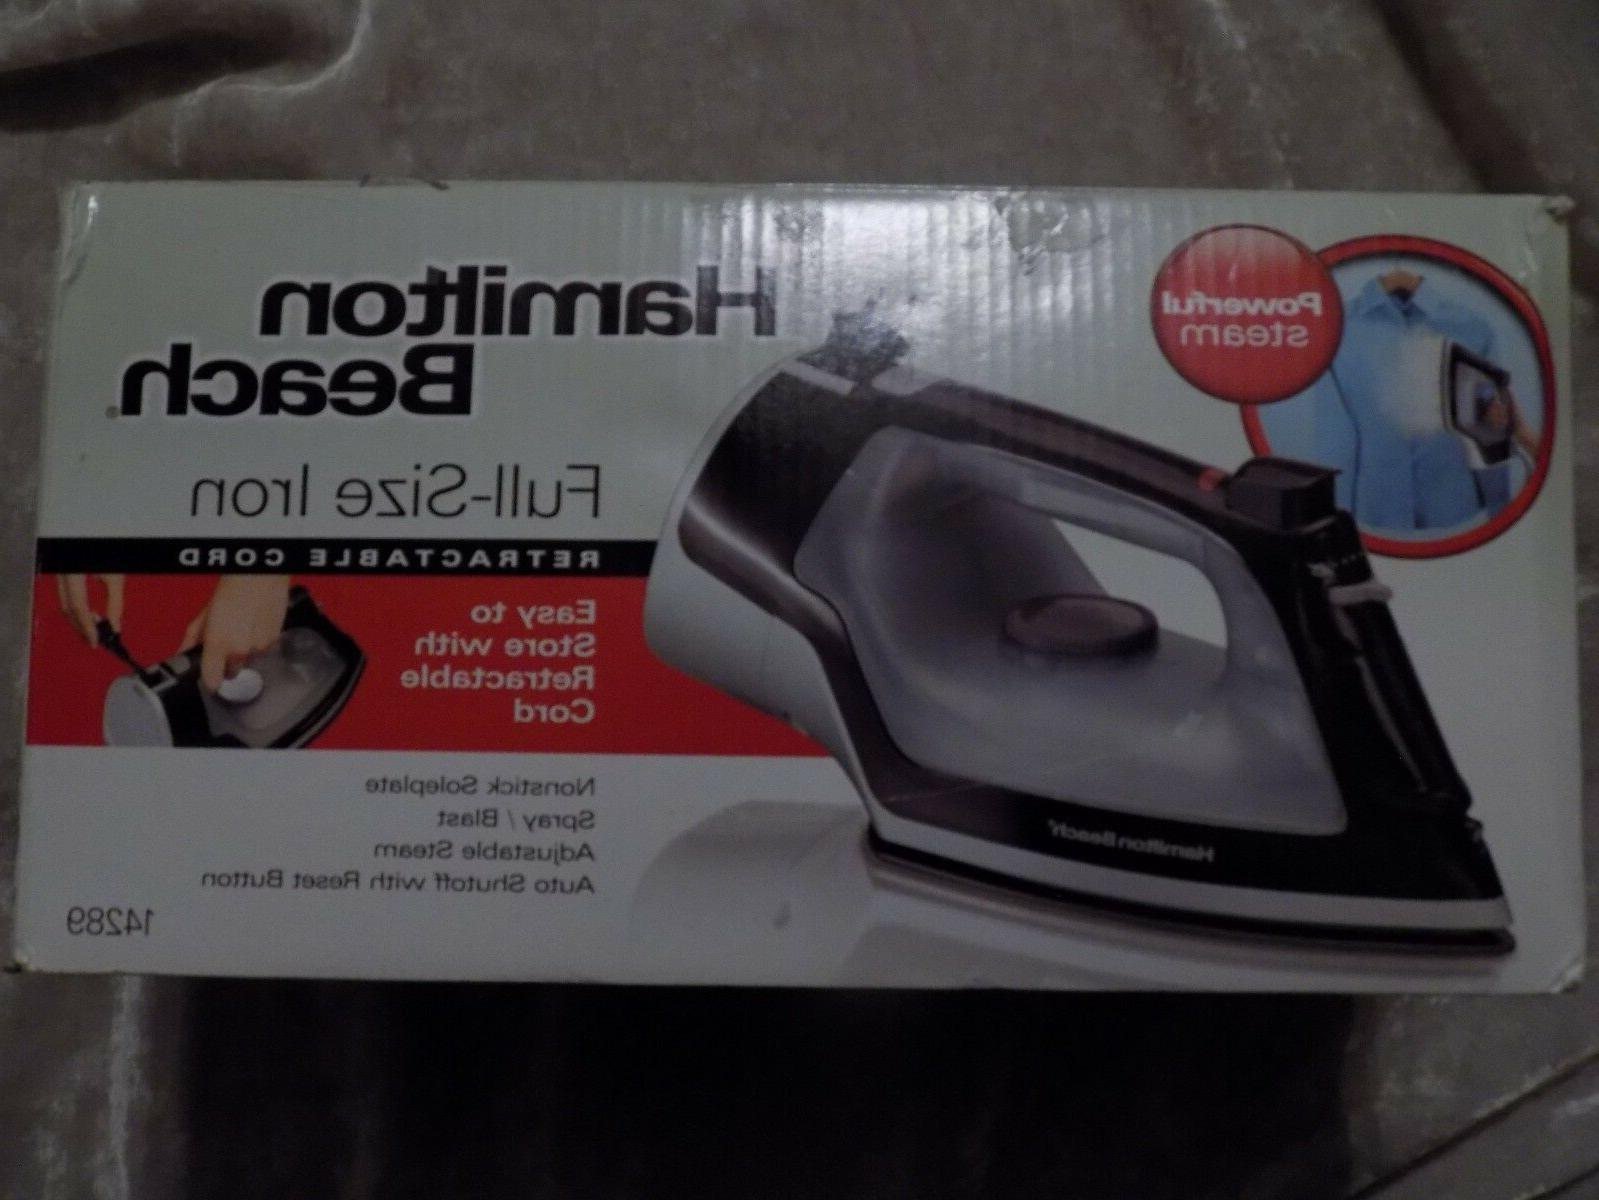 clothes iron full size retractable cord adjustable